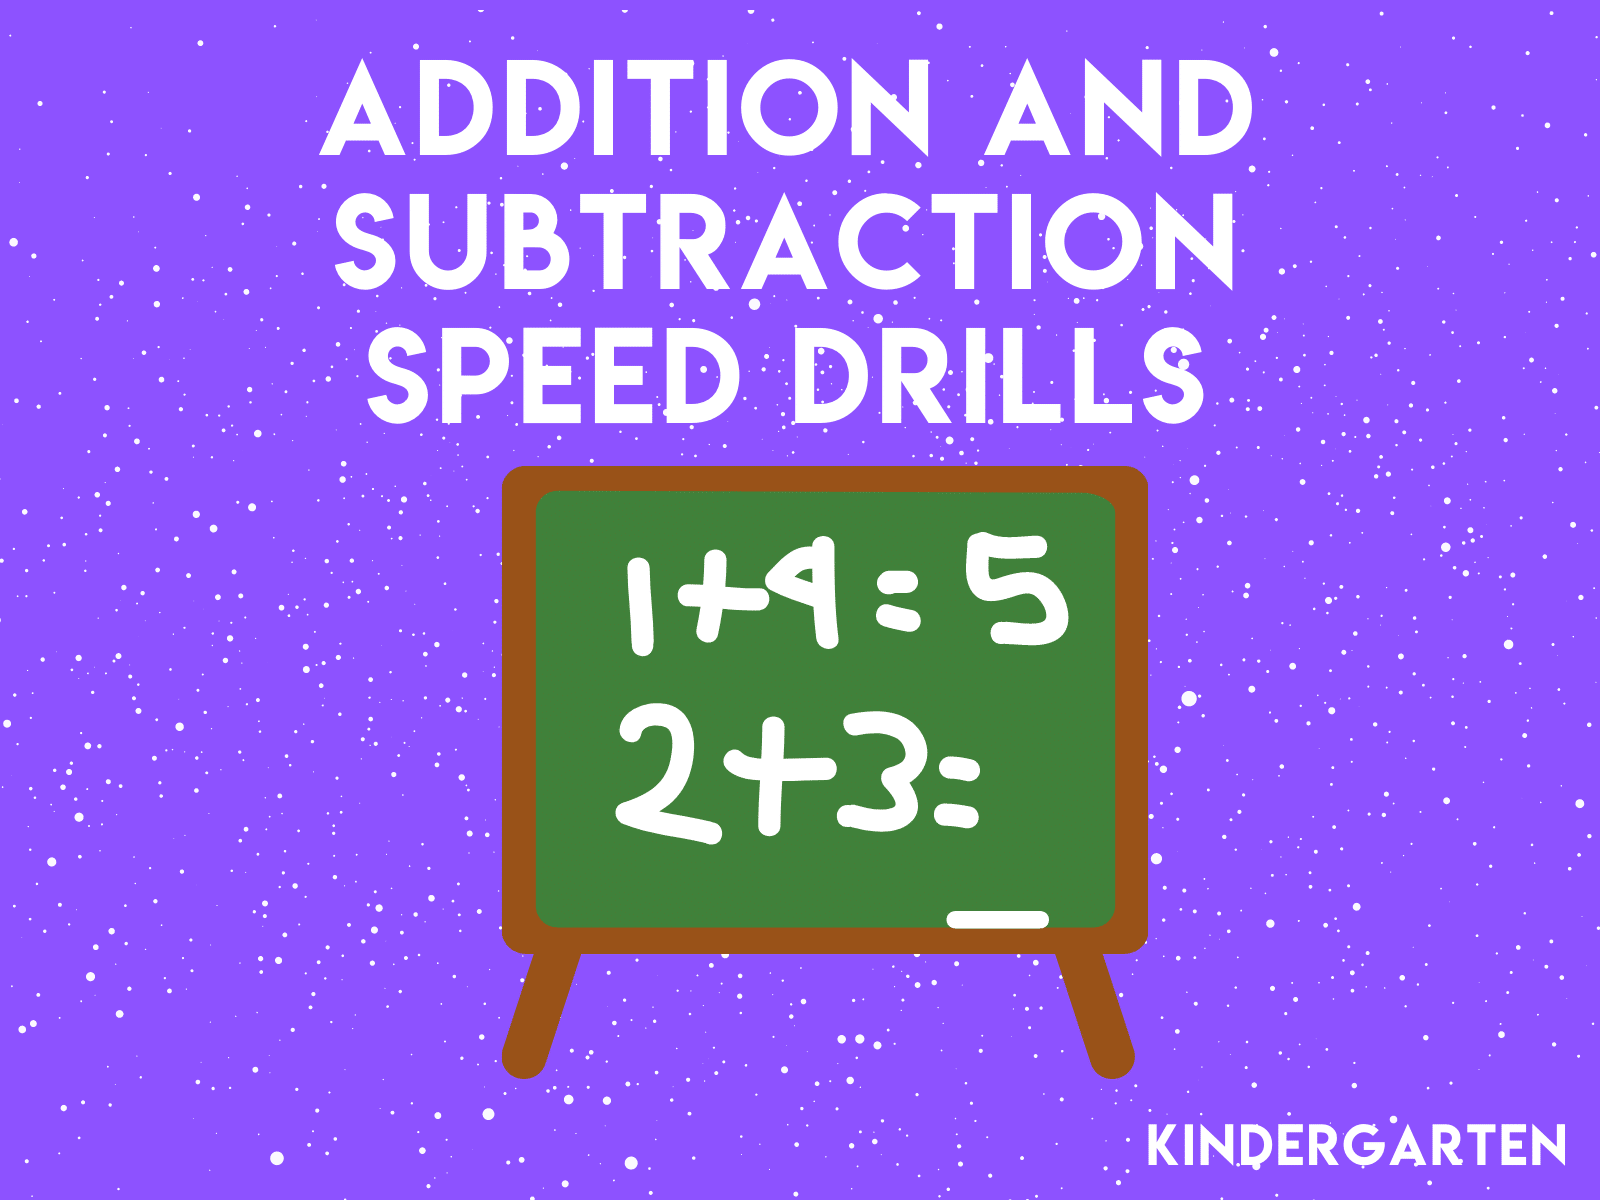 Challenge your kindergarten students with these addition and subtraction speed drills and test their math facts fluency.